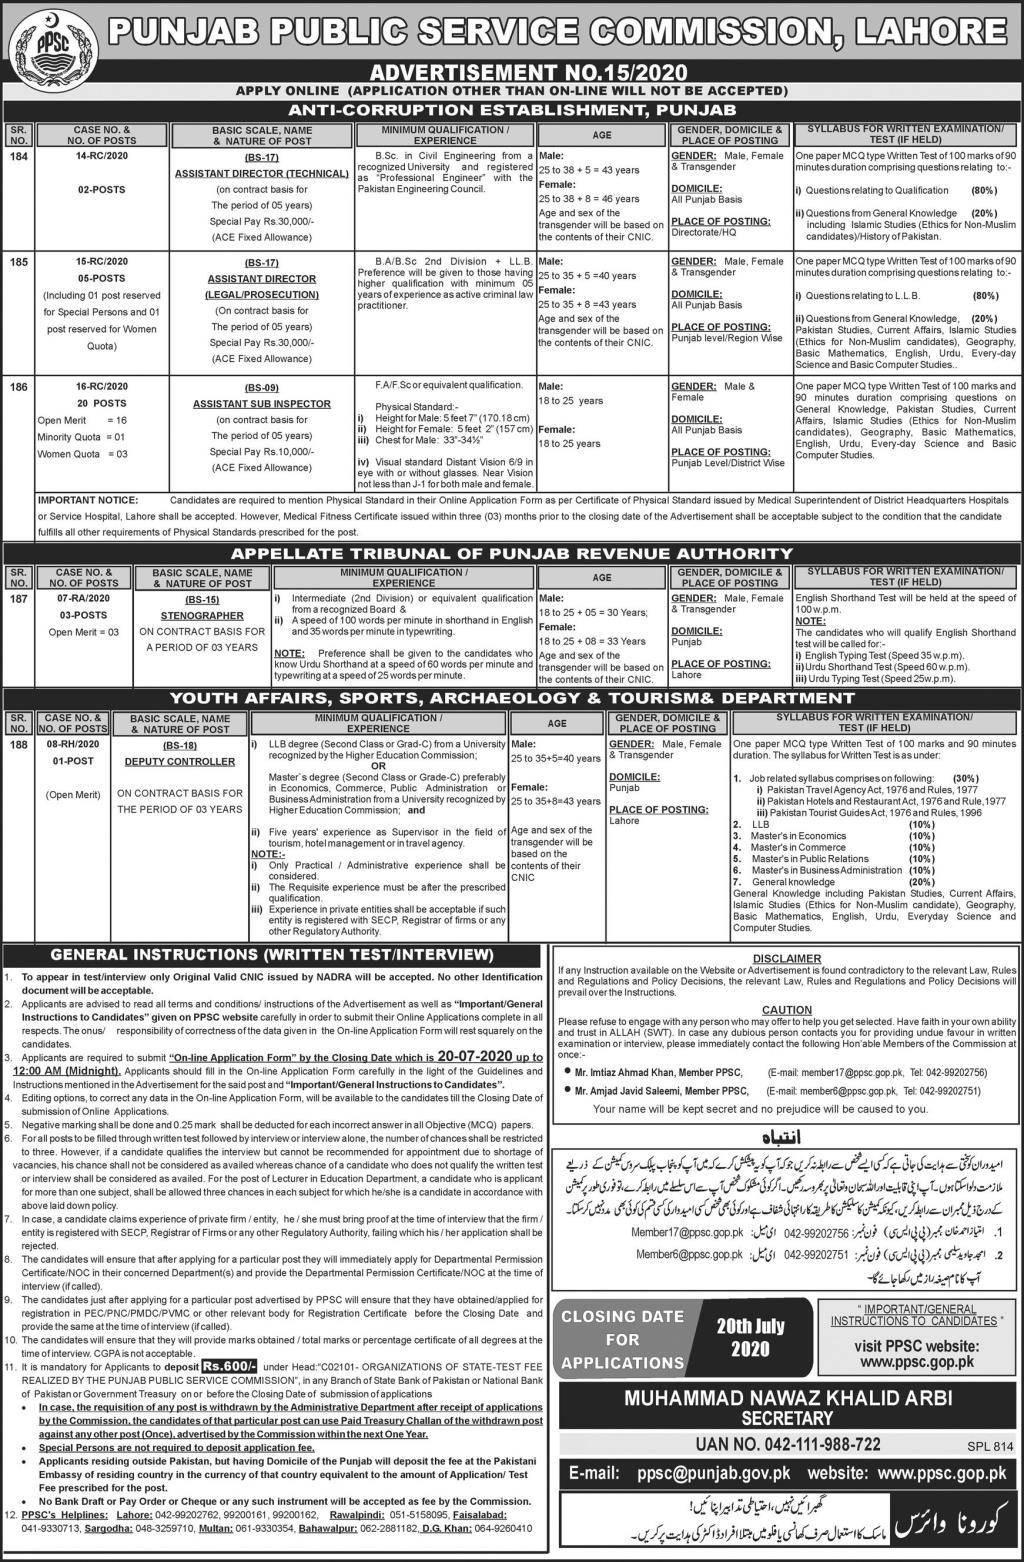 Punjab Public Service Commission PPSC Lahore Jobs July 2020